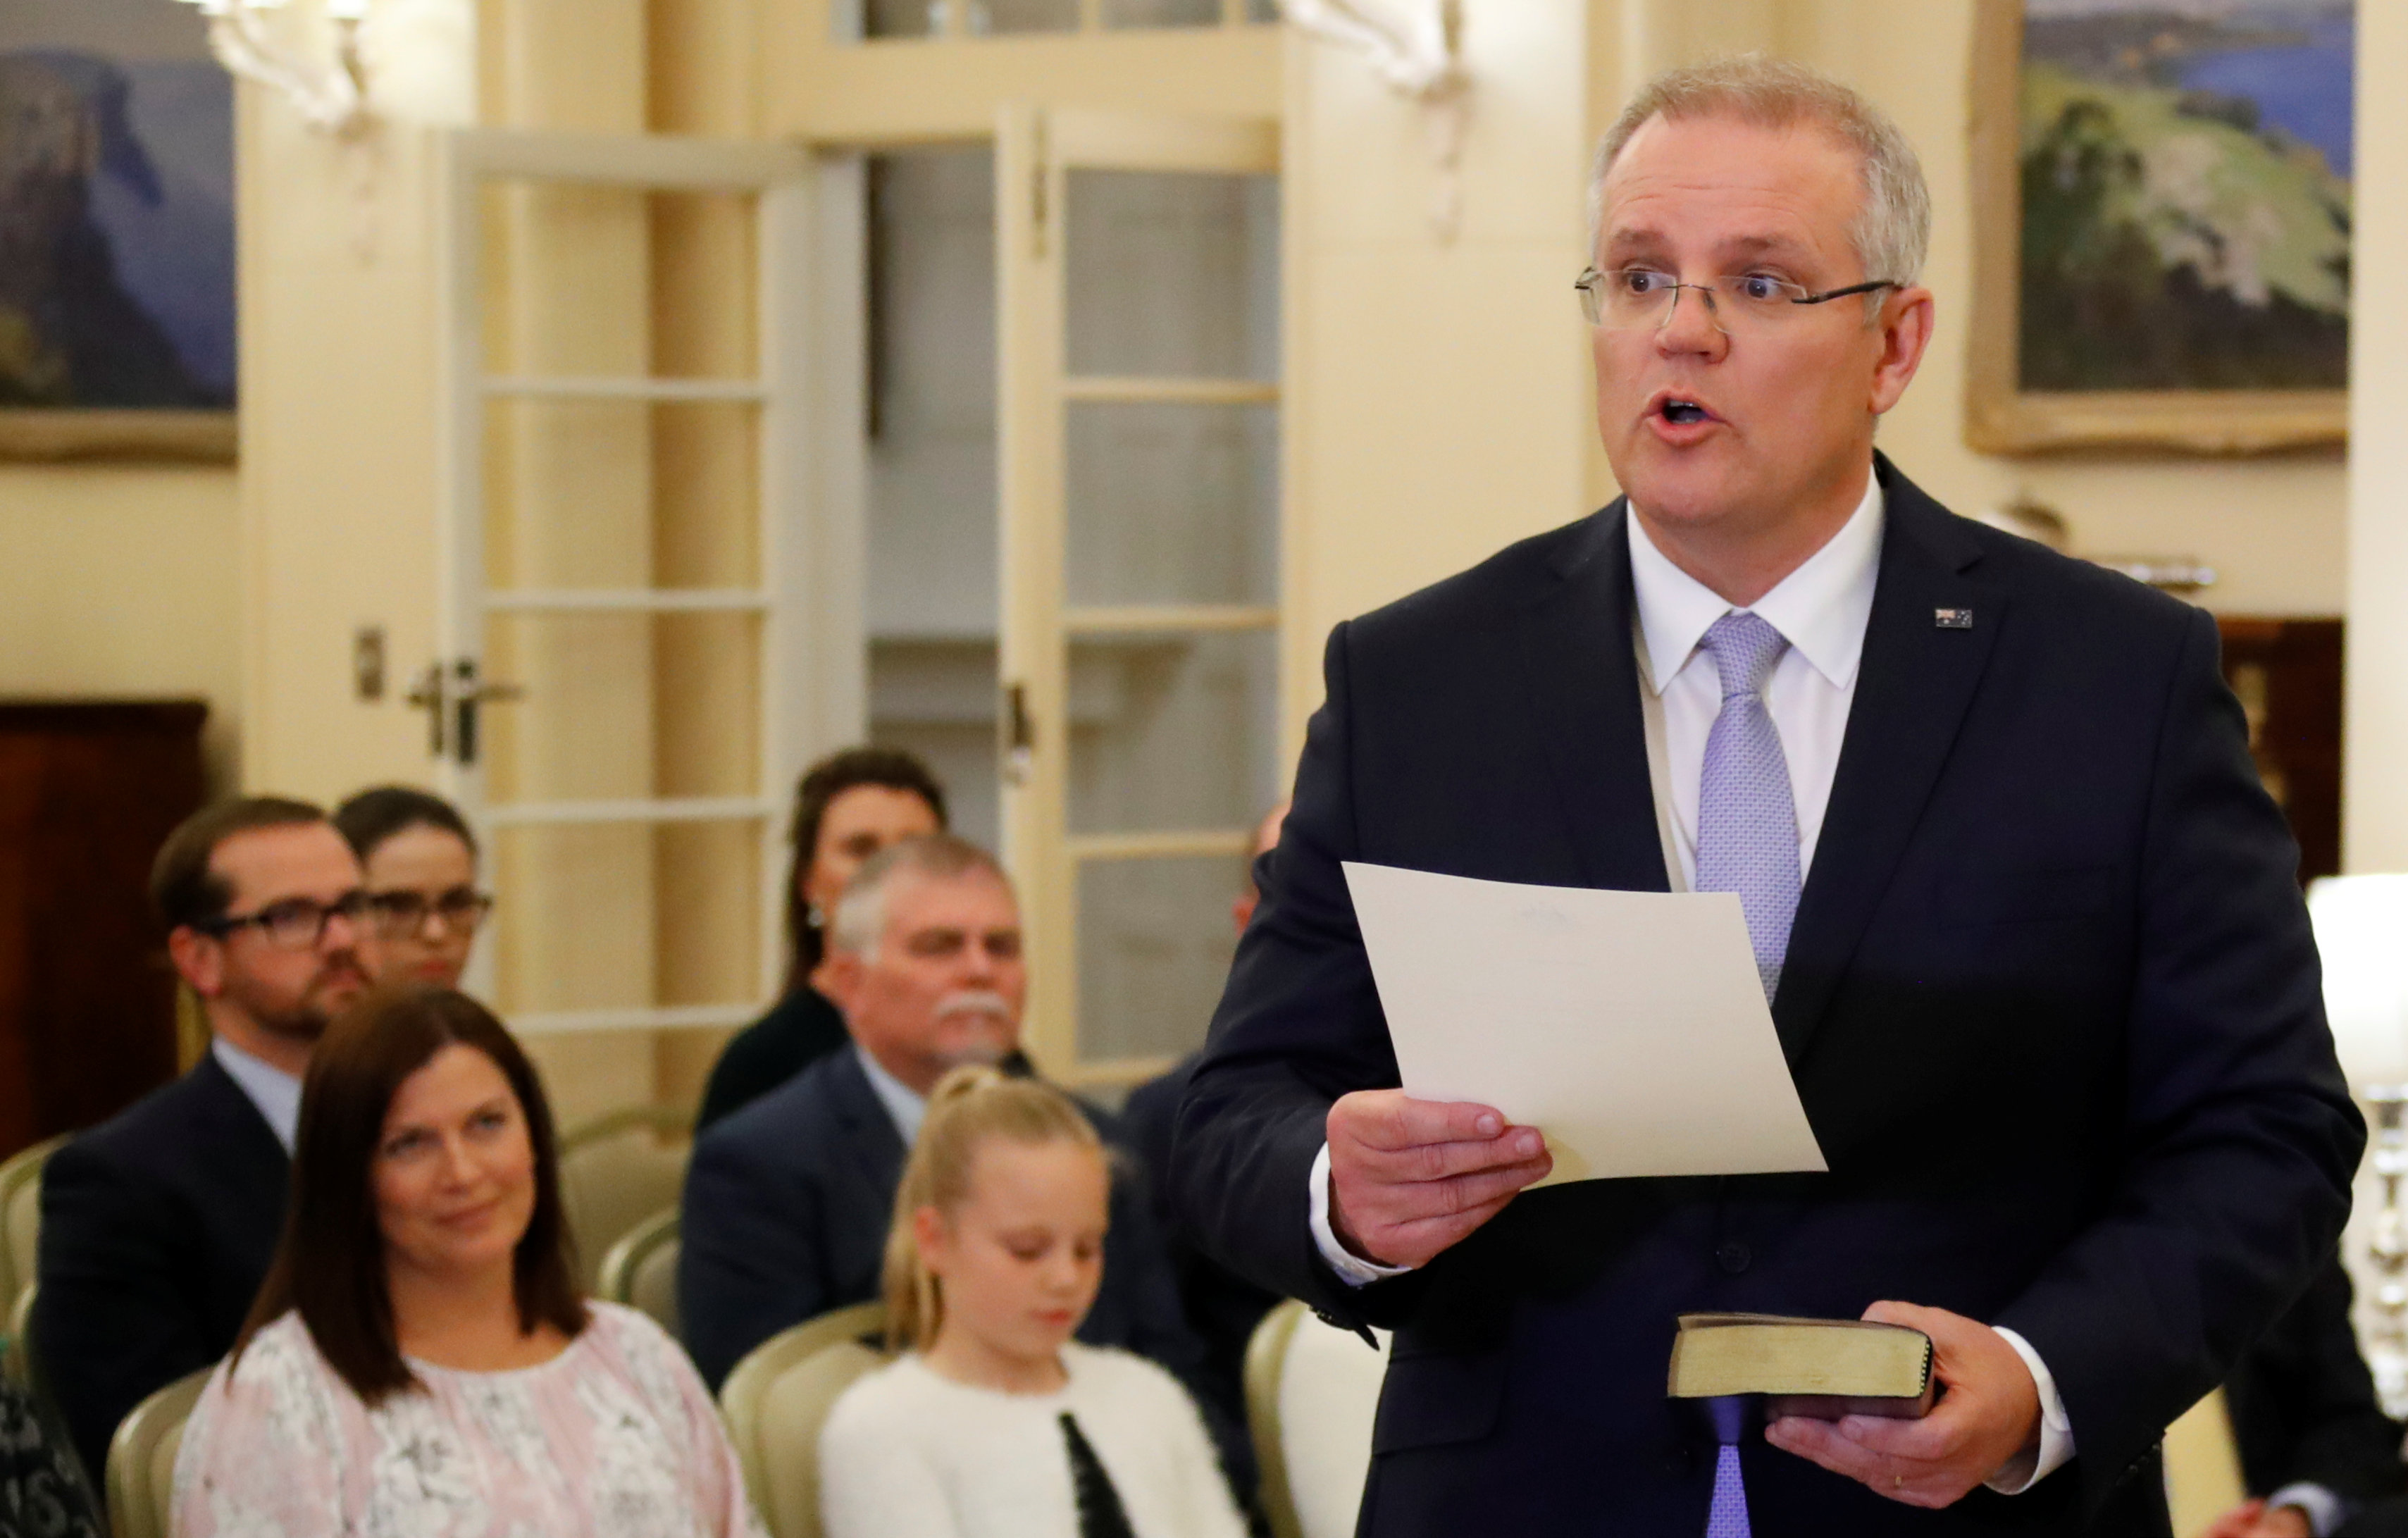 FILE PHOTO: The new Australian Prime Minister Scott Morrison attends a swearing-in ceremony as his wife Jenny looks on, in Canberra, Australia August 24, 2018.  REUTERS/David Gray